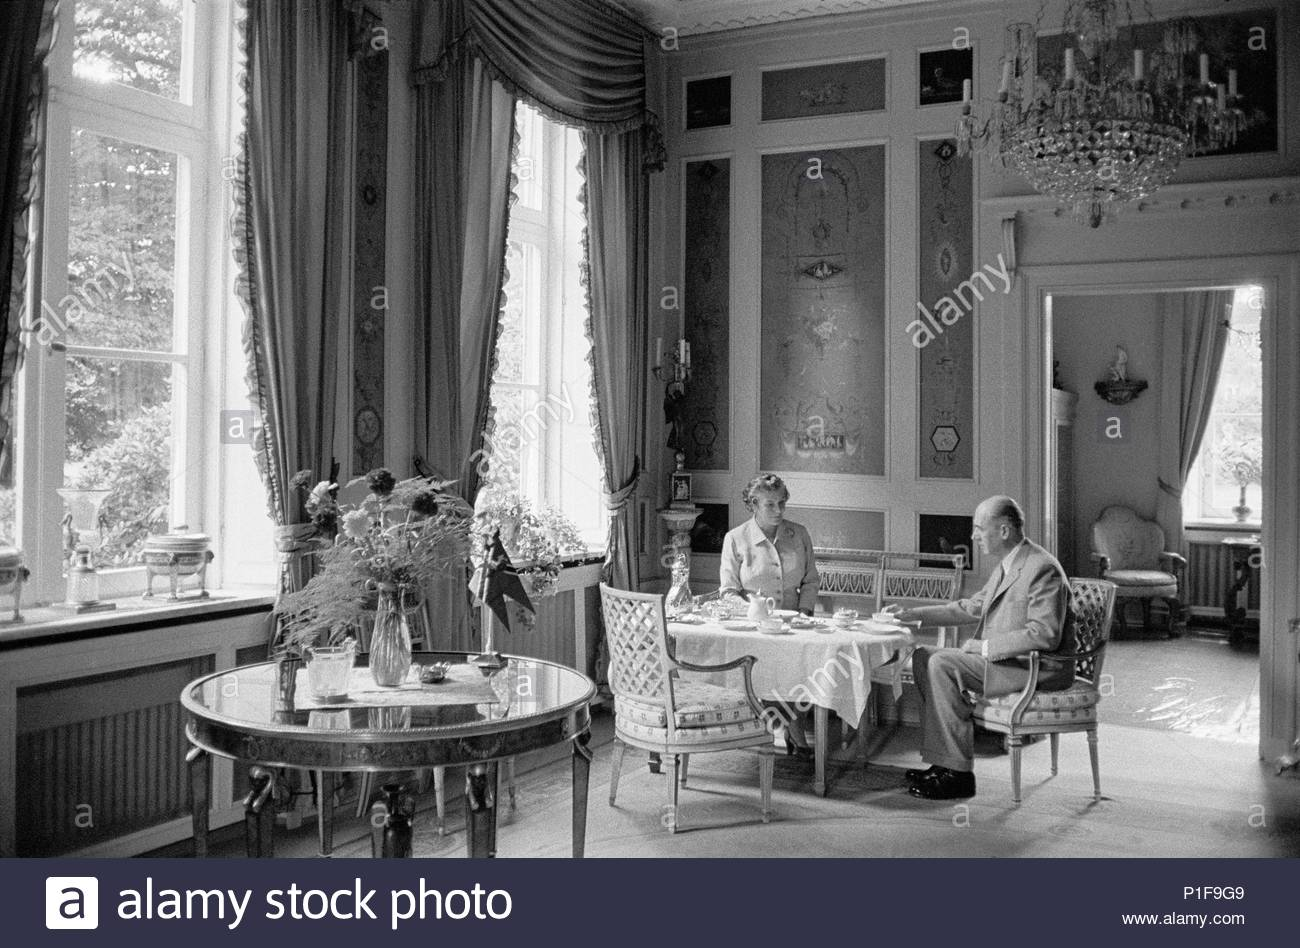 Mr. and Mrs. Essberger dining in their Hamburg townhouse, built in 1790 by Hansen, the architect who built most of Copenhagen. Mr. Essberger is one of Hamburg's wealthiest shipowners. Hamburg,1958. Location: Townscape, Hamburg, Germany. - Stock Image